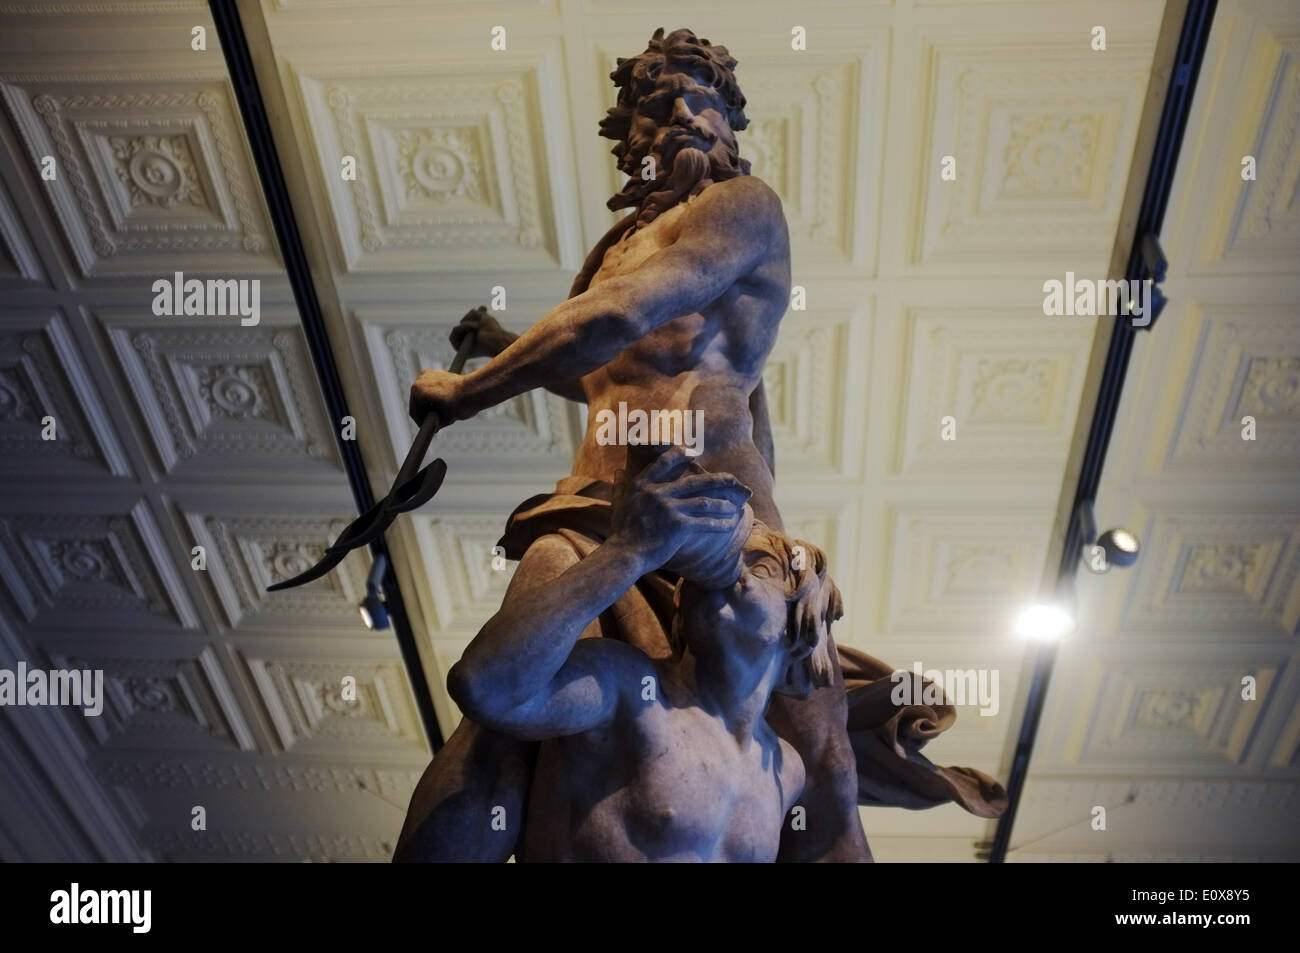 Poseidon sculpture and Greed/Lust/Envy drinking wine below him. Displayed at the VnA in London - Stock Image